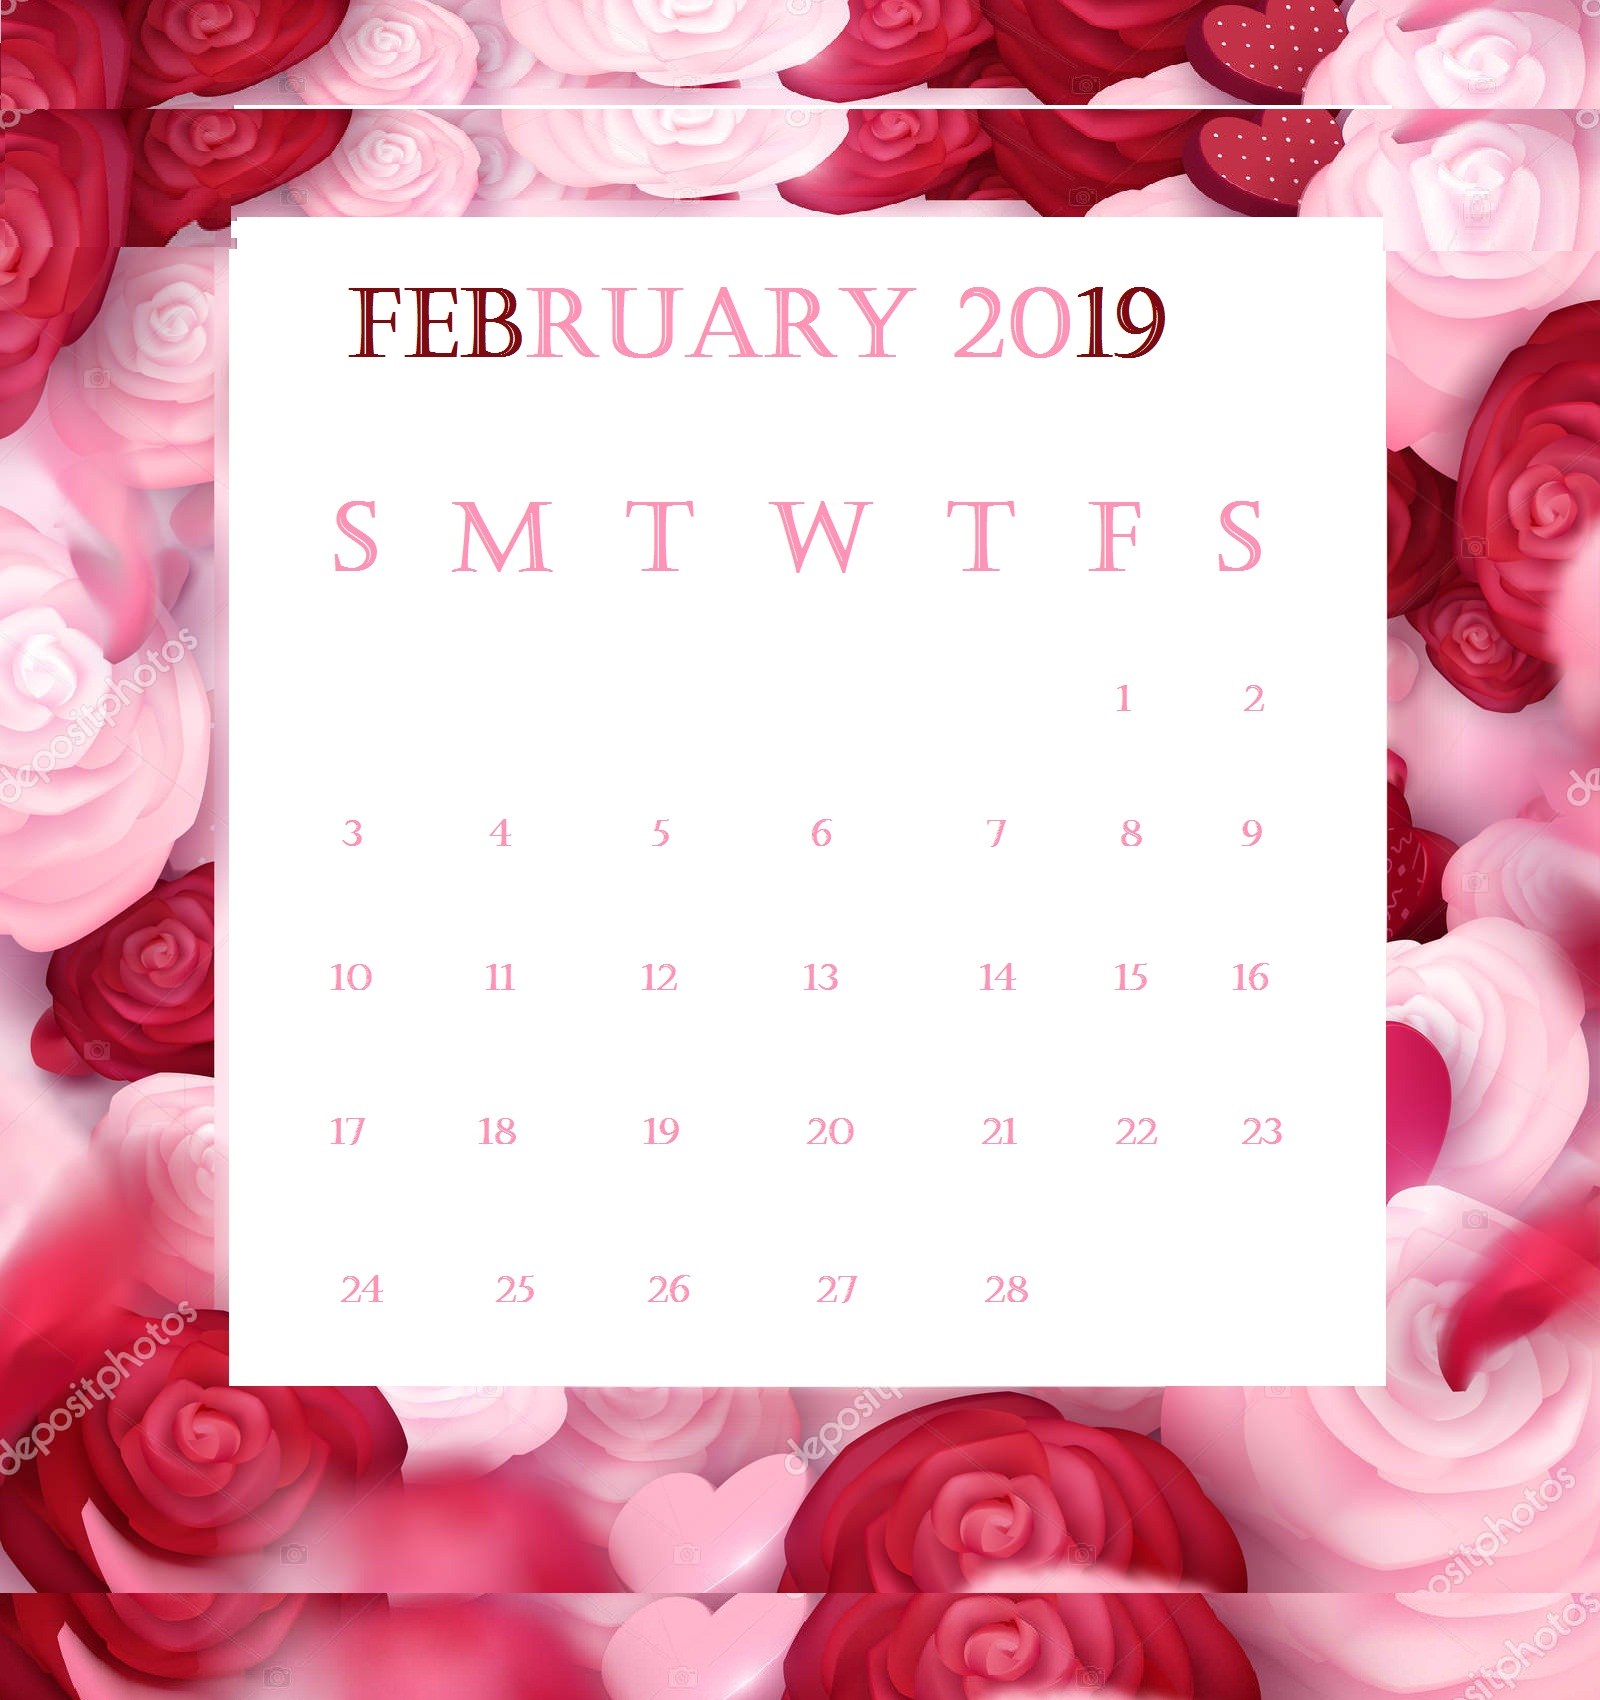 Beautiful Flowers February 2019 Wallpapers